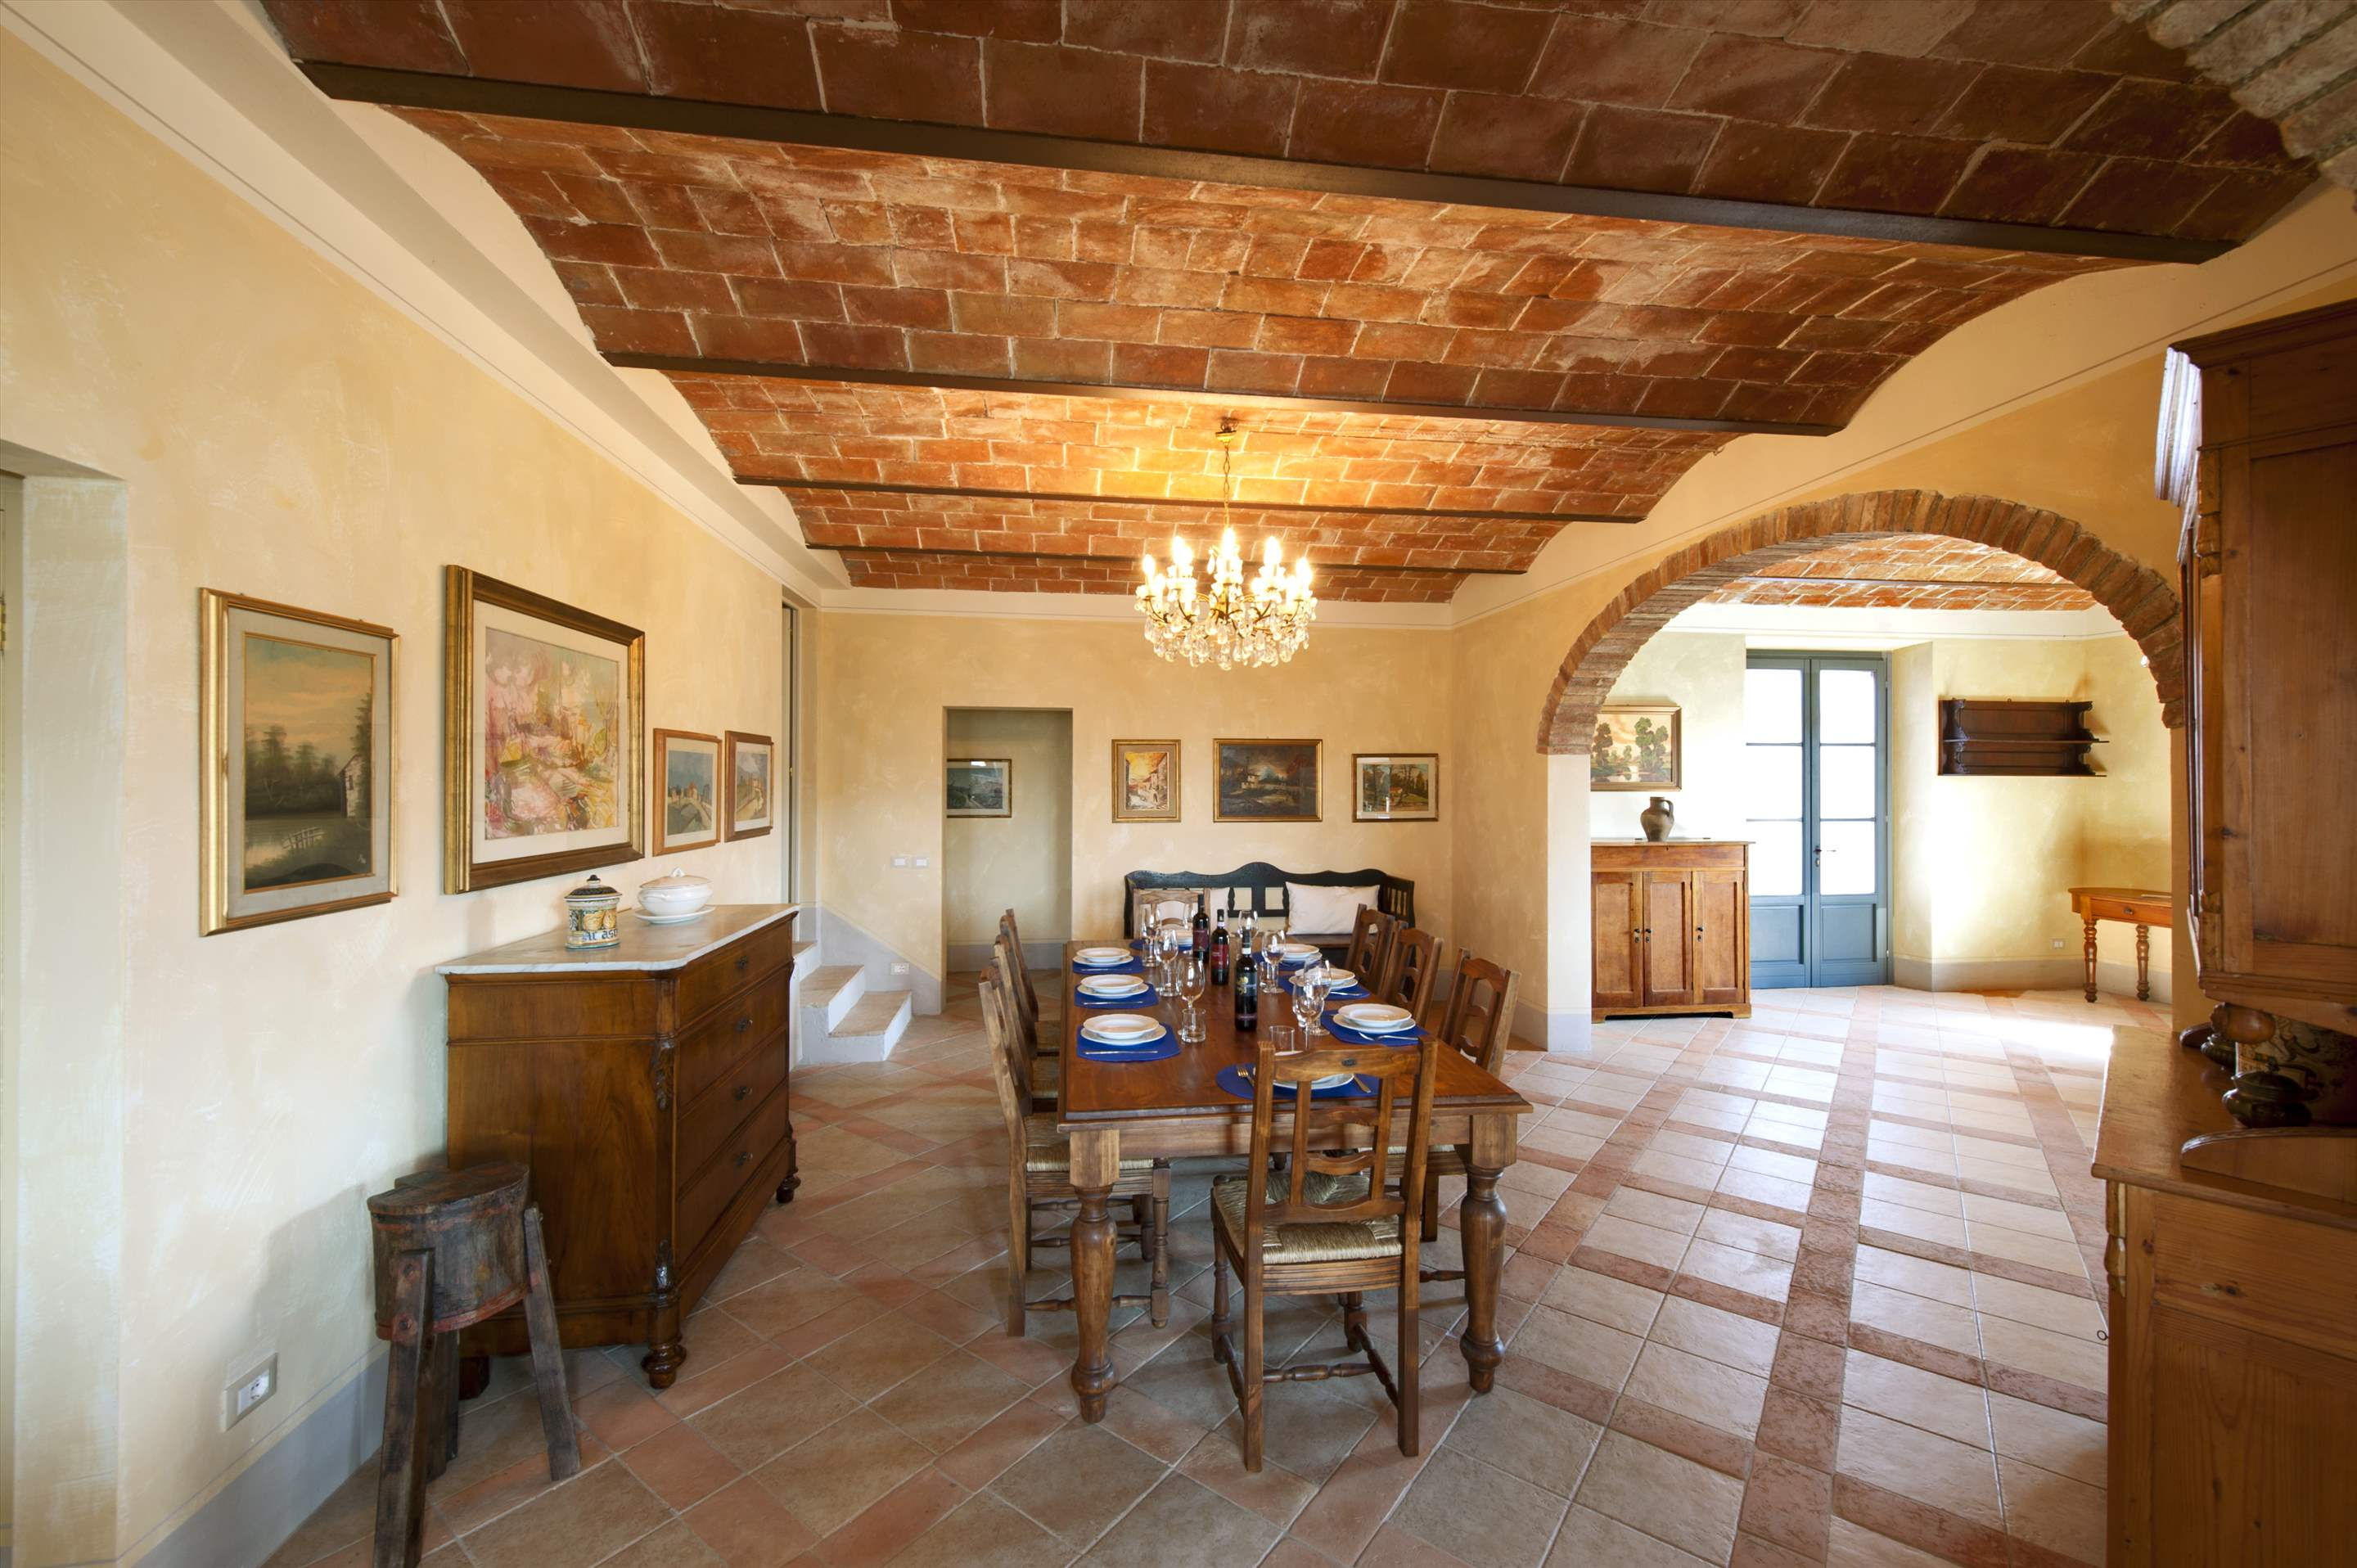 Podere Di Collina, First Floor, 4 bedroom villa in Tuscany Coast, Tuscany Photo #10